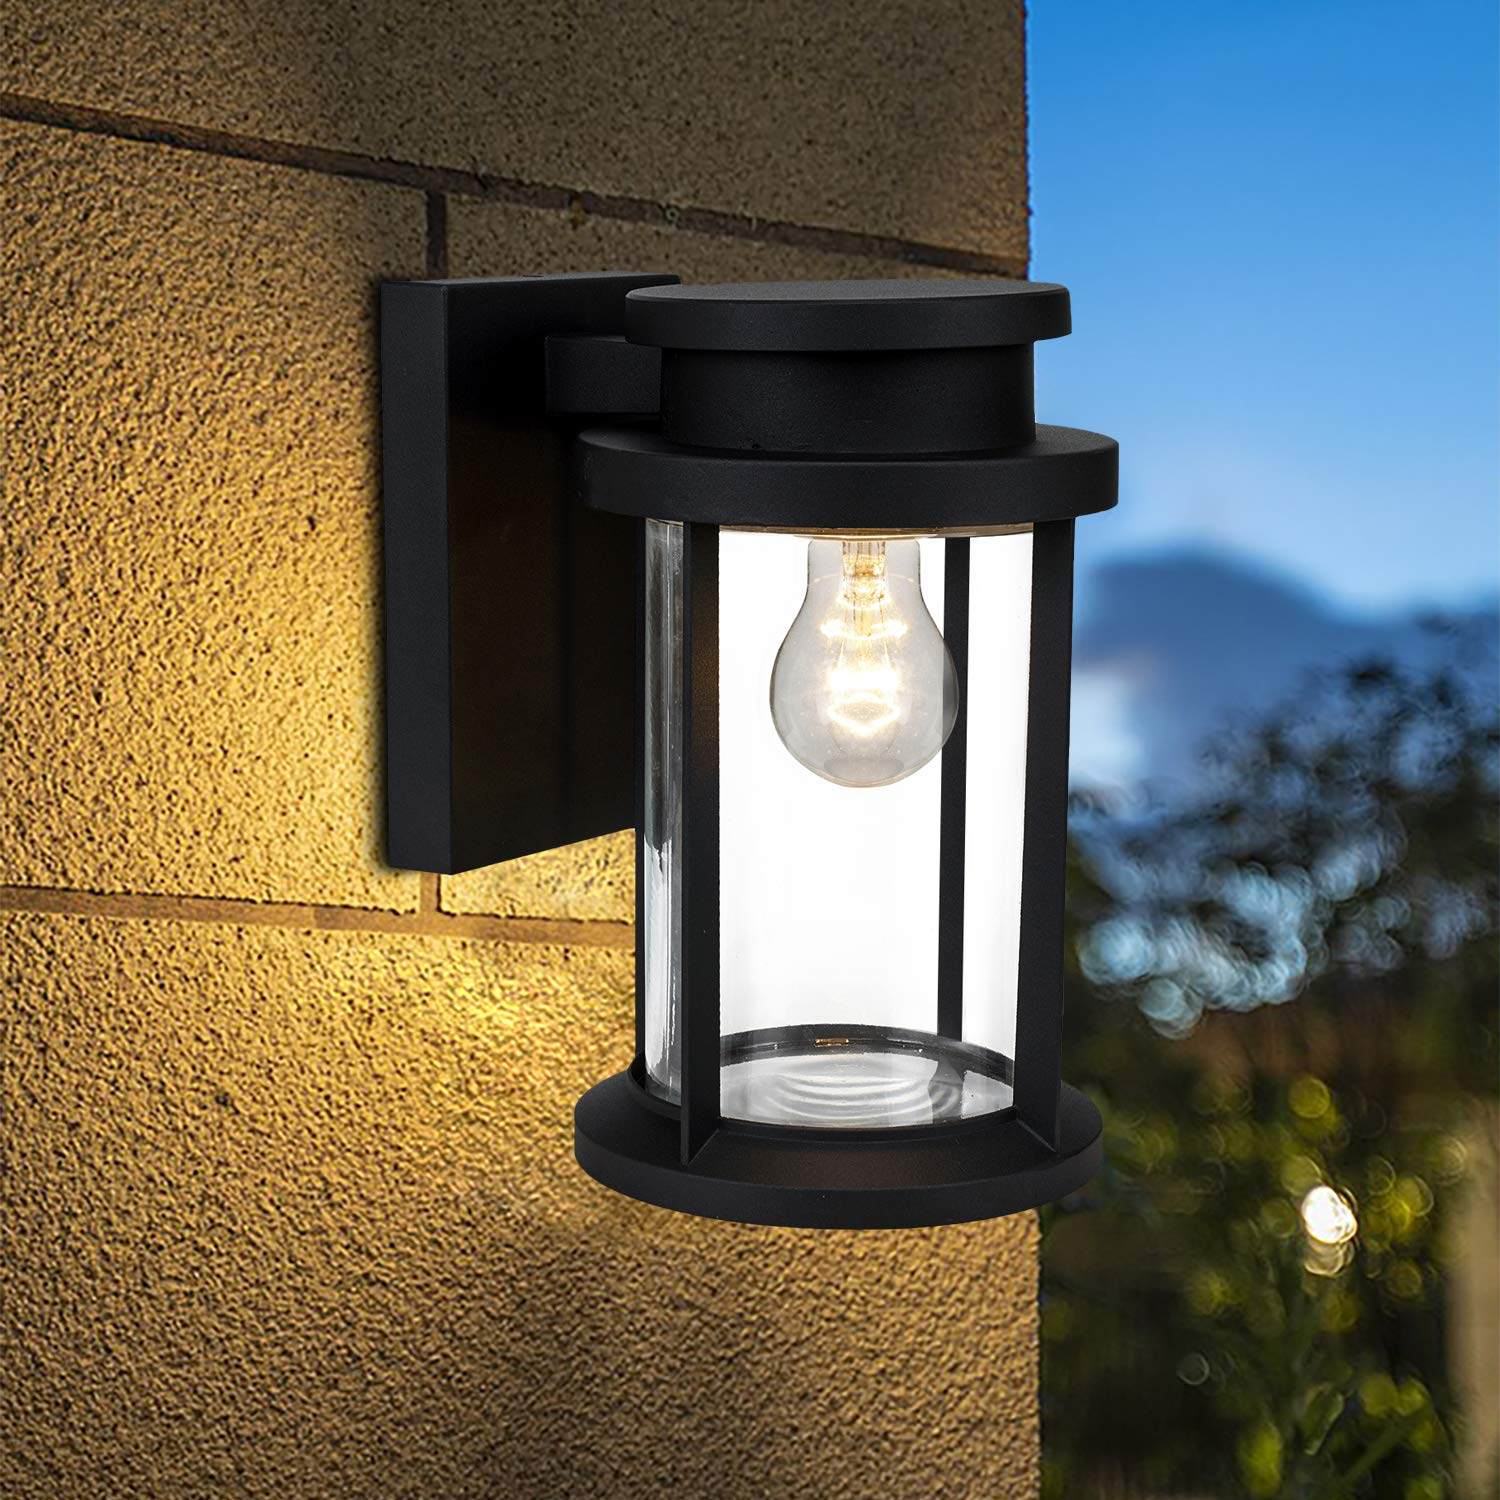 Moon Bay Outdoor Wall Down Round Pagoda Light, High Volt, E26 Base Socket(excl), Modern Lantern Design, Die Cast Aluminum Body with Clear Glass Shade, Waterproof for Entryway,Porch,Doorway,(Black)